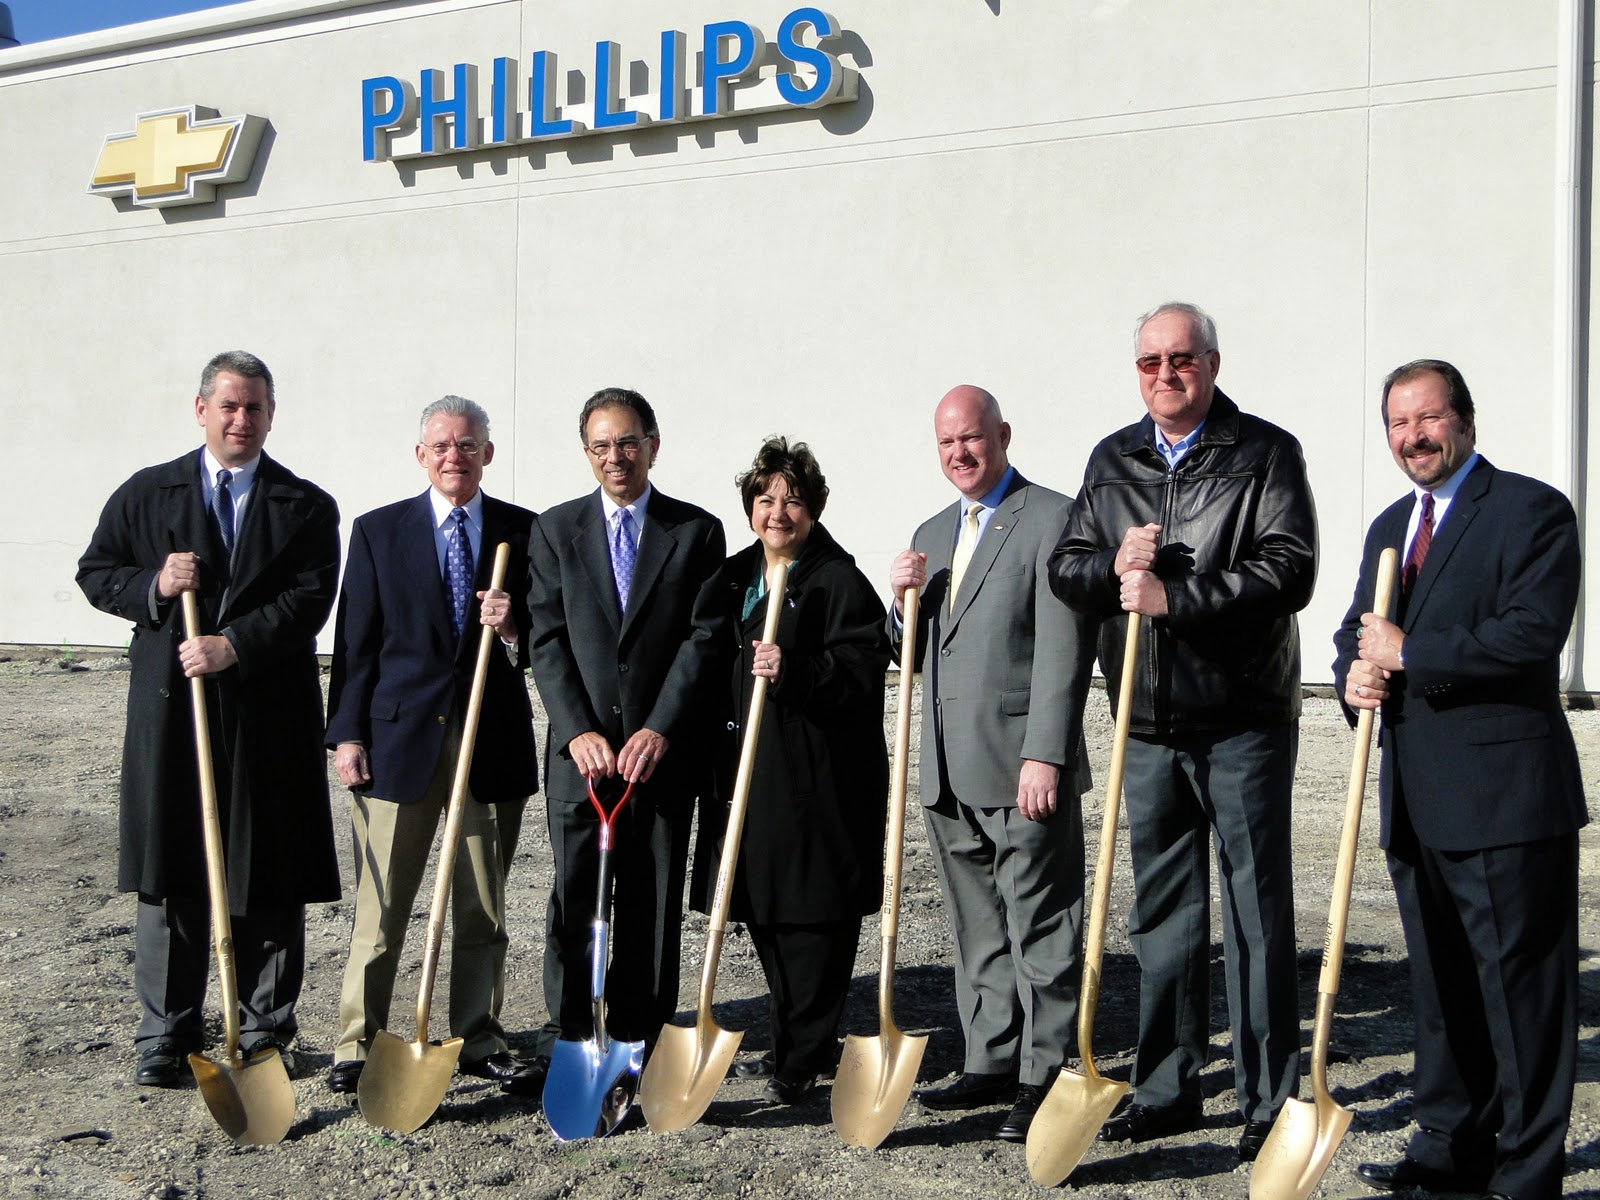 (Pictured Left To Right: Frankfort Administrator  Jerry Ducay; Mayor Of  Frankfort  Jim Holland; President Of Phillips Chevrolet  Curtis Pascarella;  ...